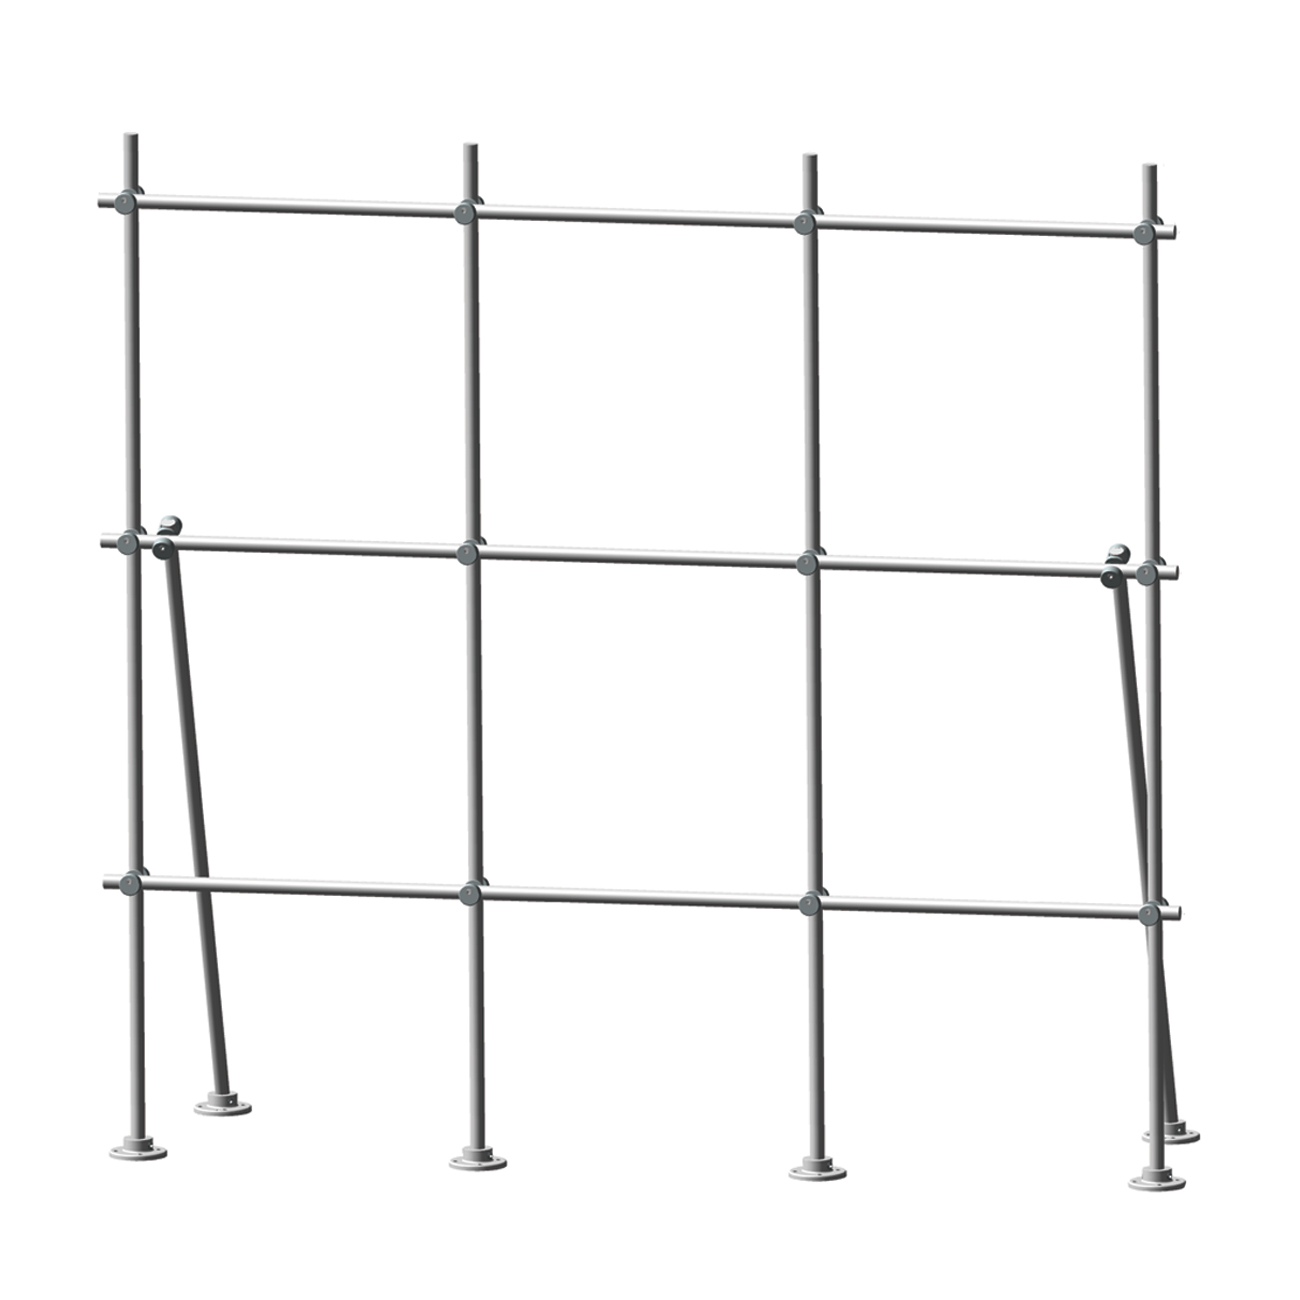 stainless steel table top lattice frame kit - Stainless Steel Table Top